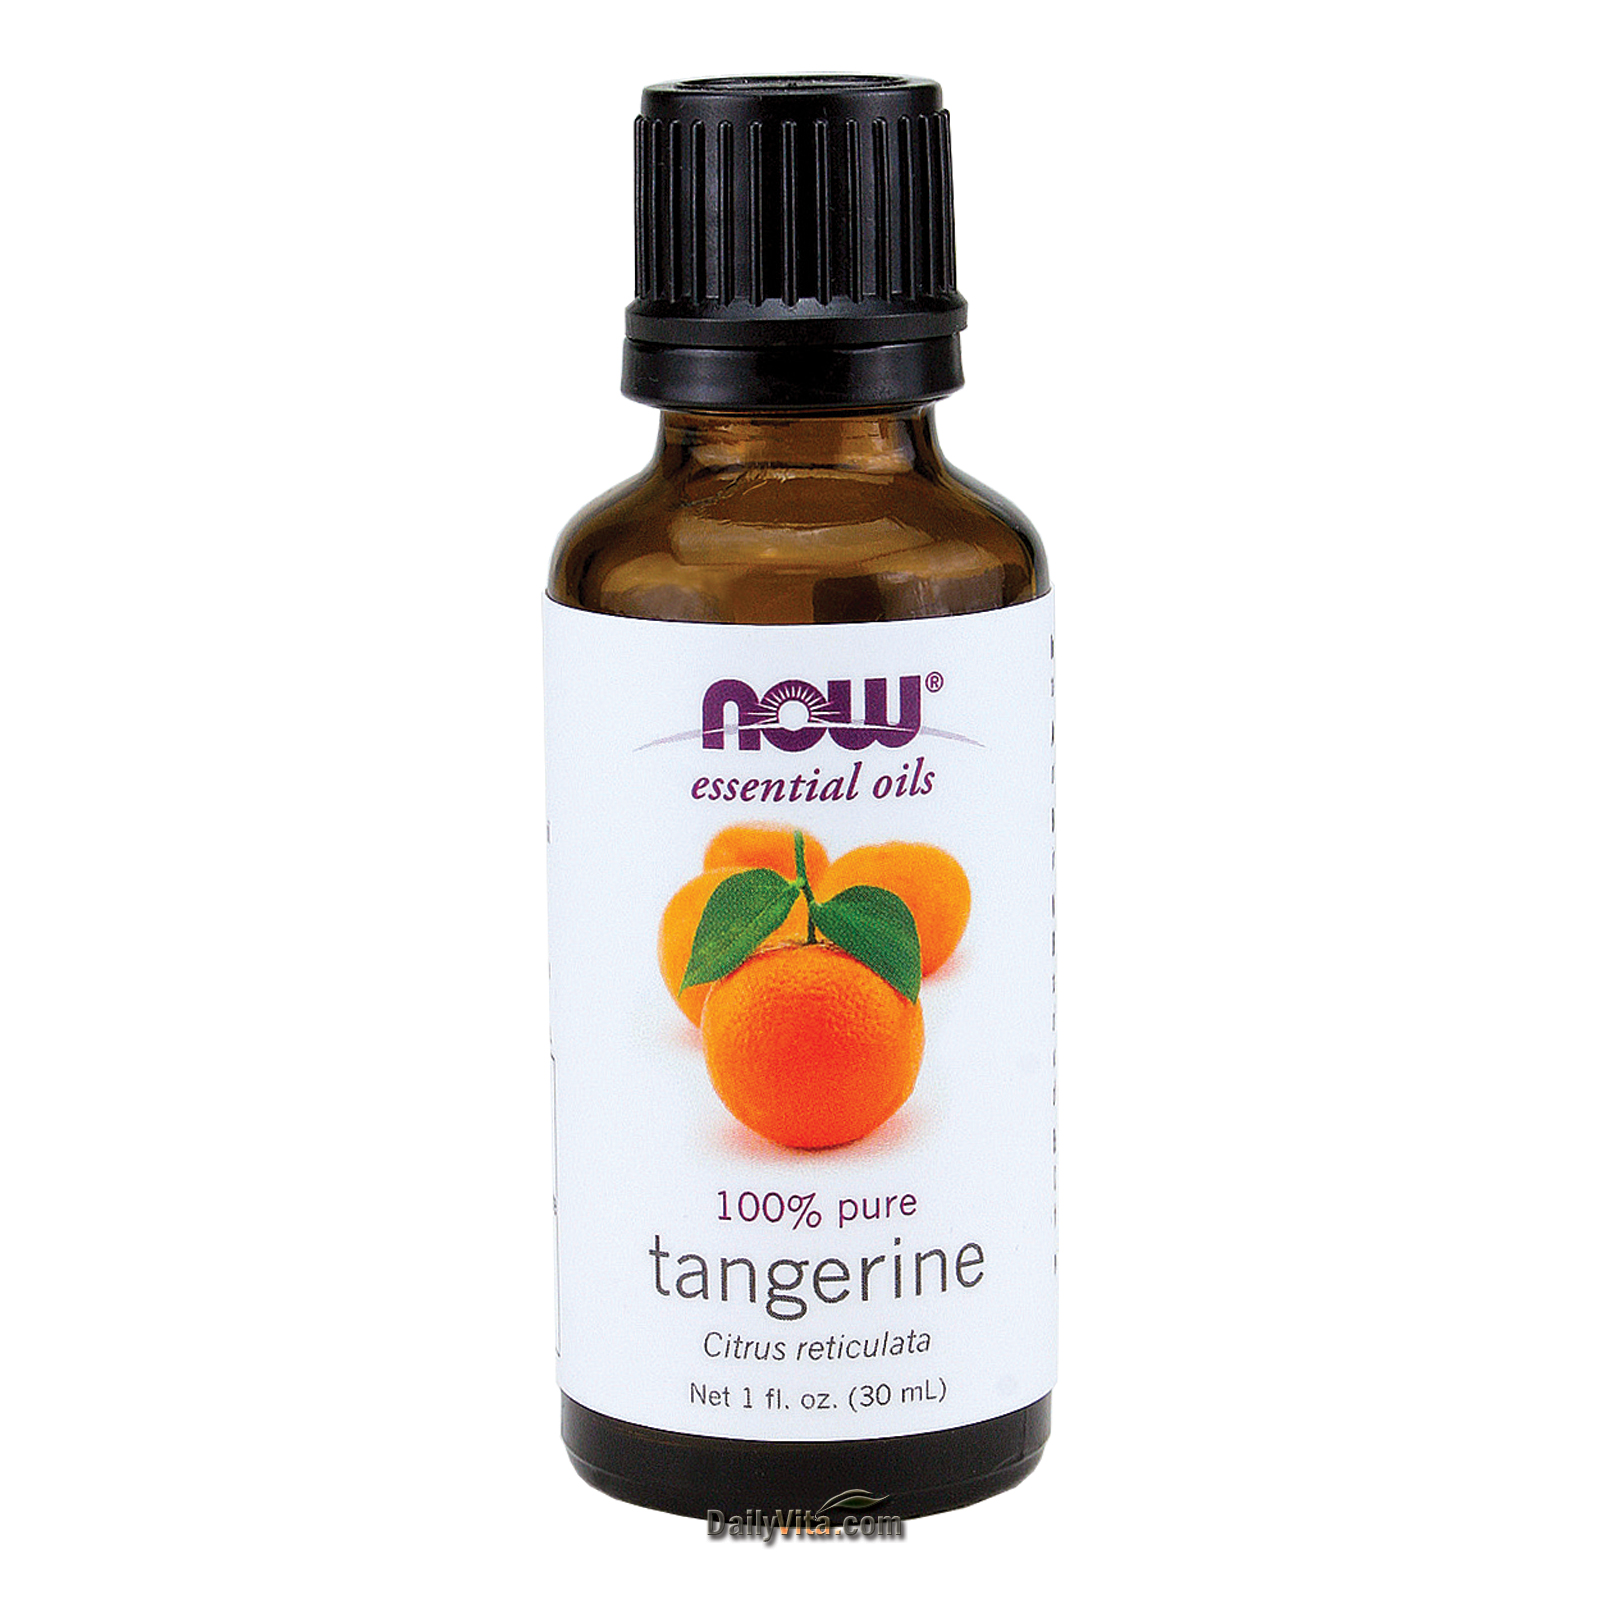 NOW® 100% Pure & Natural Tangerine Oil - 1 oz (30ml)